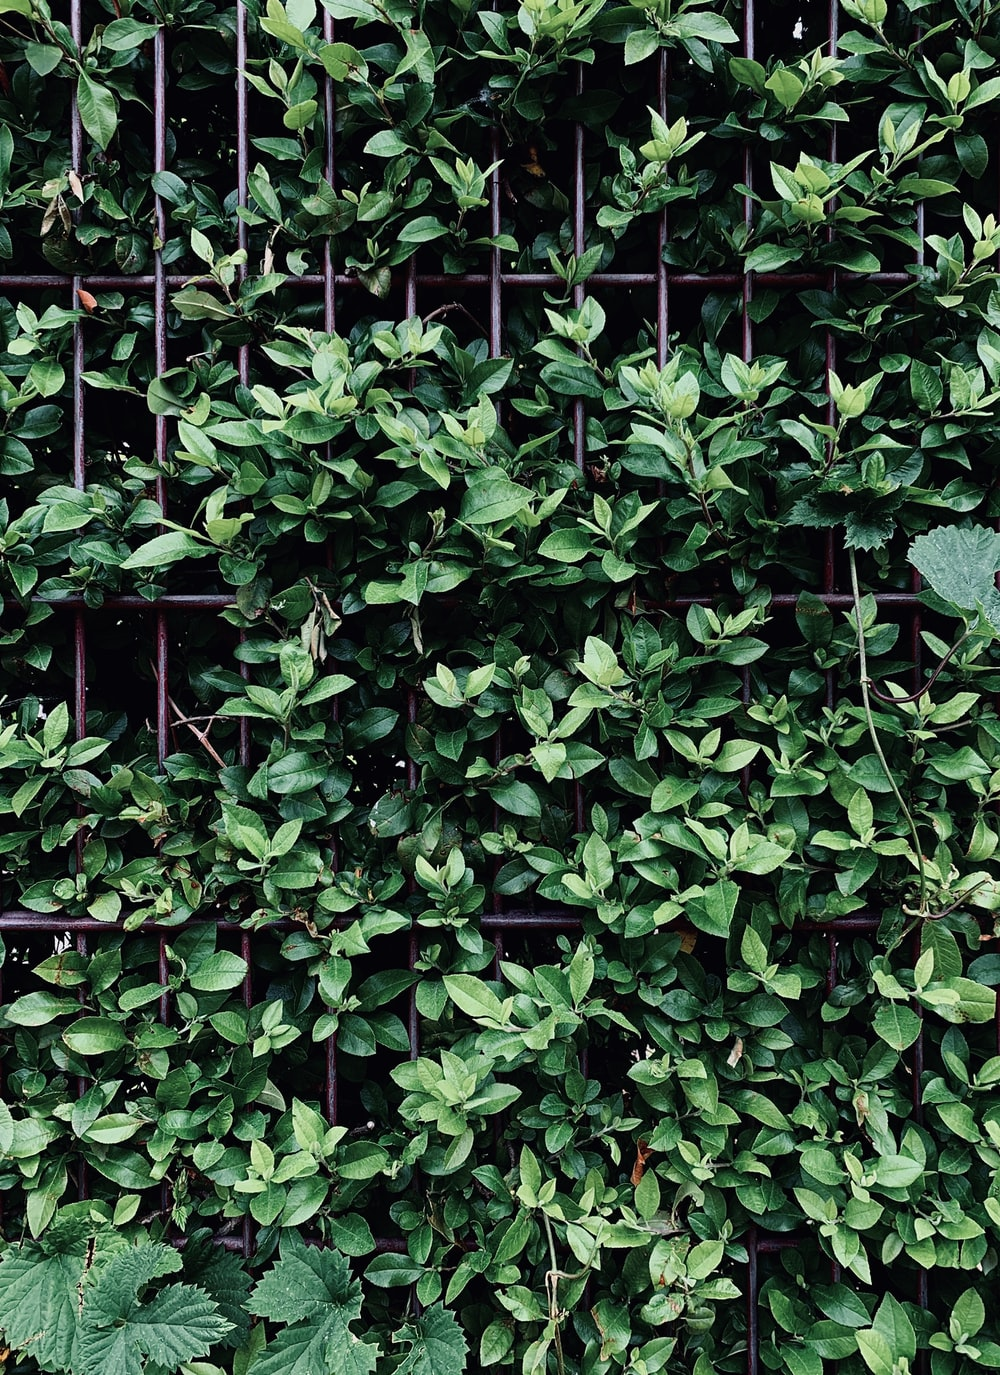 green leaves on gray metal fence